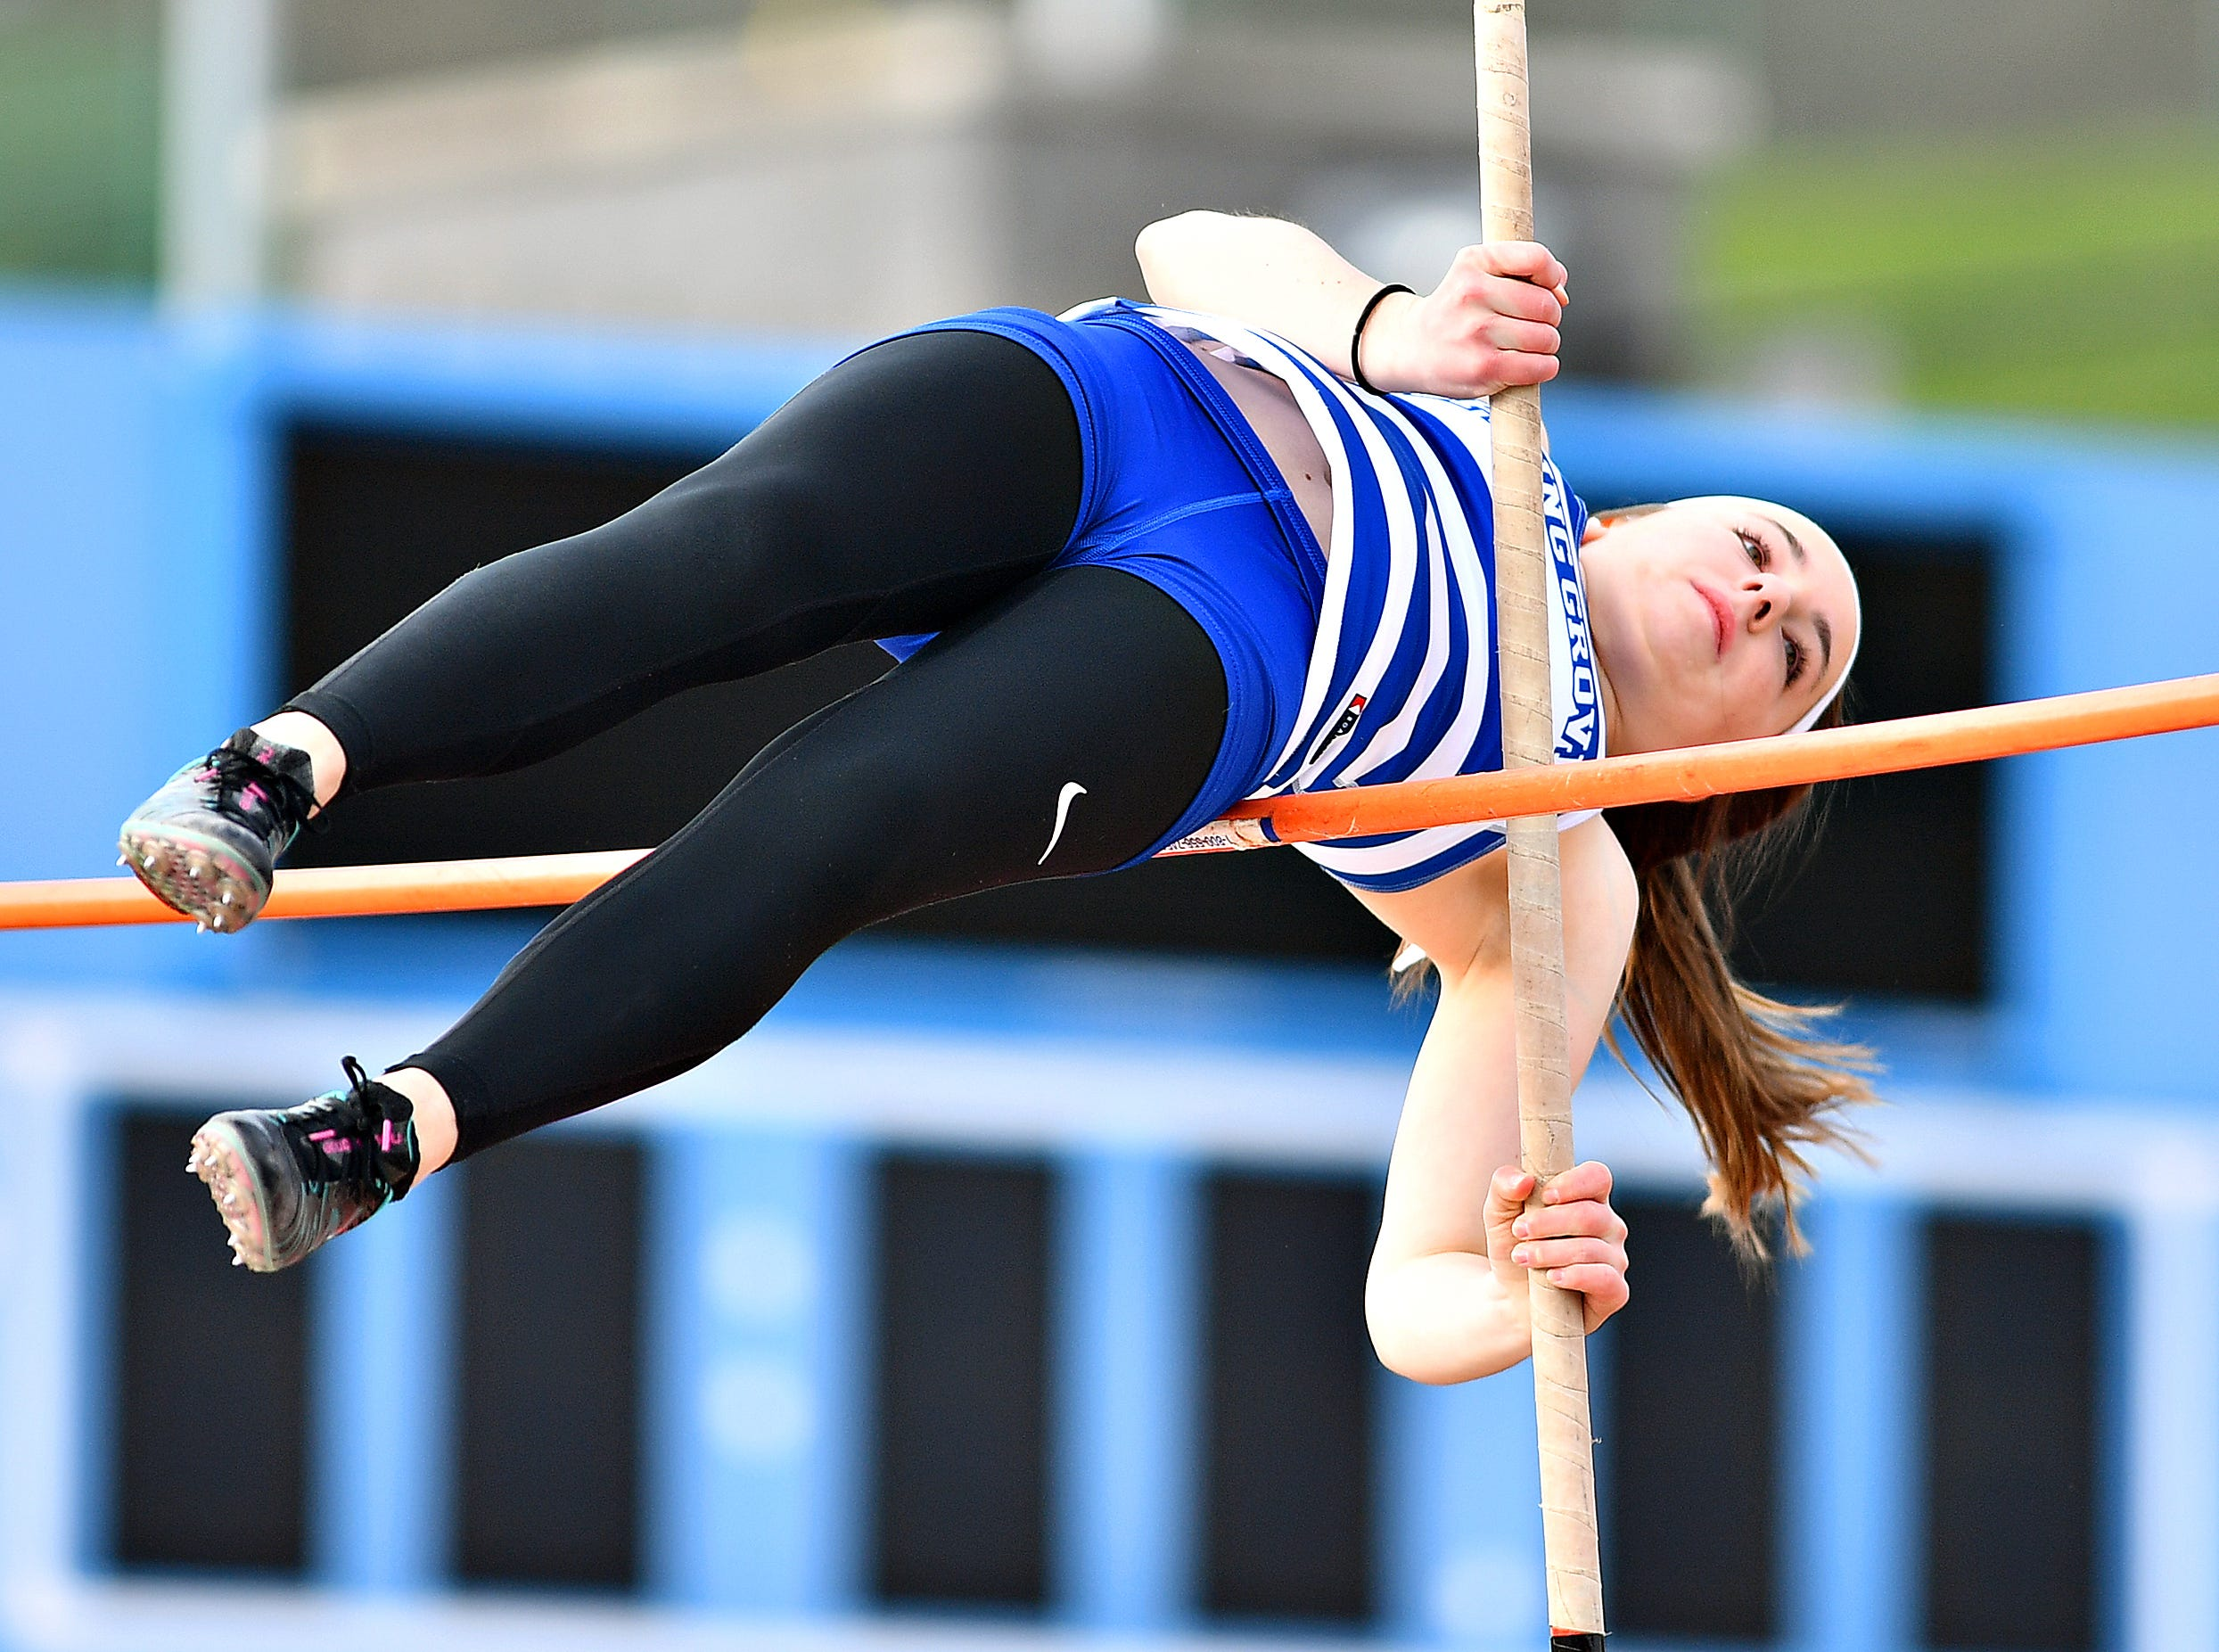 Spring Grove's Kasey Smith competes in Pole Vaulting during track & field action against South Western in Jackson Township, Thursday, April 11, 2019. Dawn J. Sagert photo